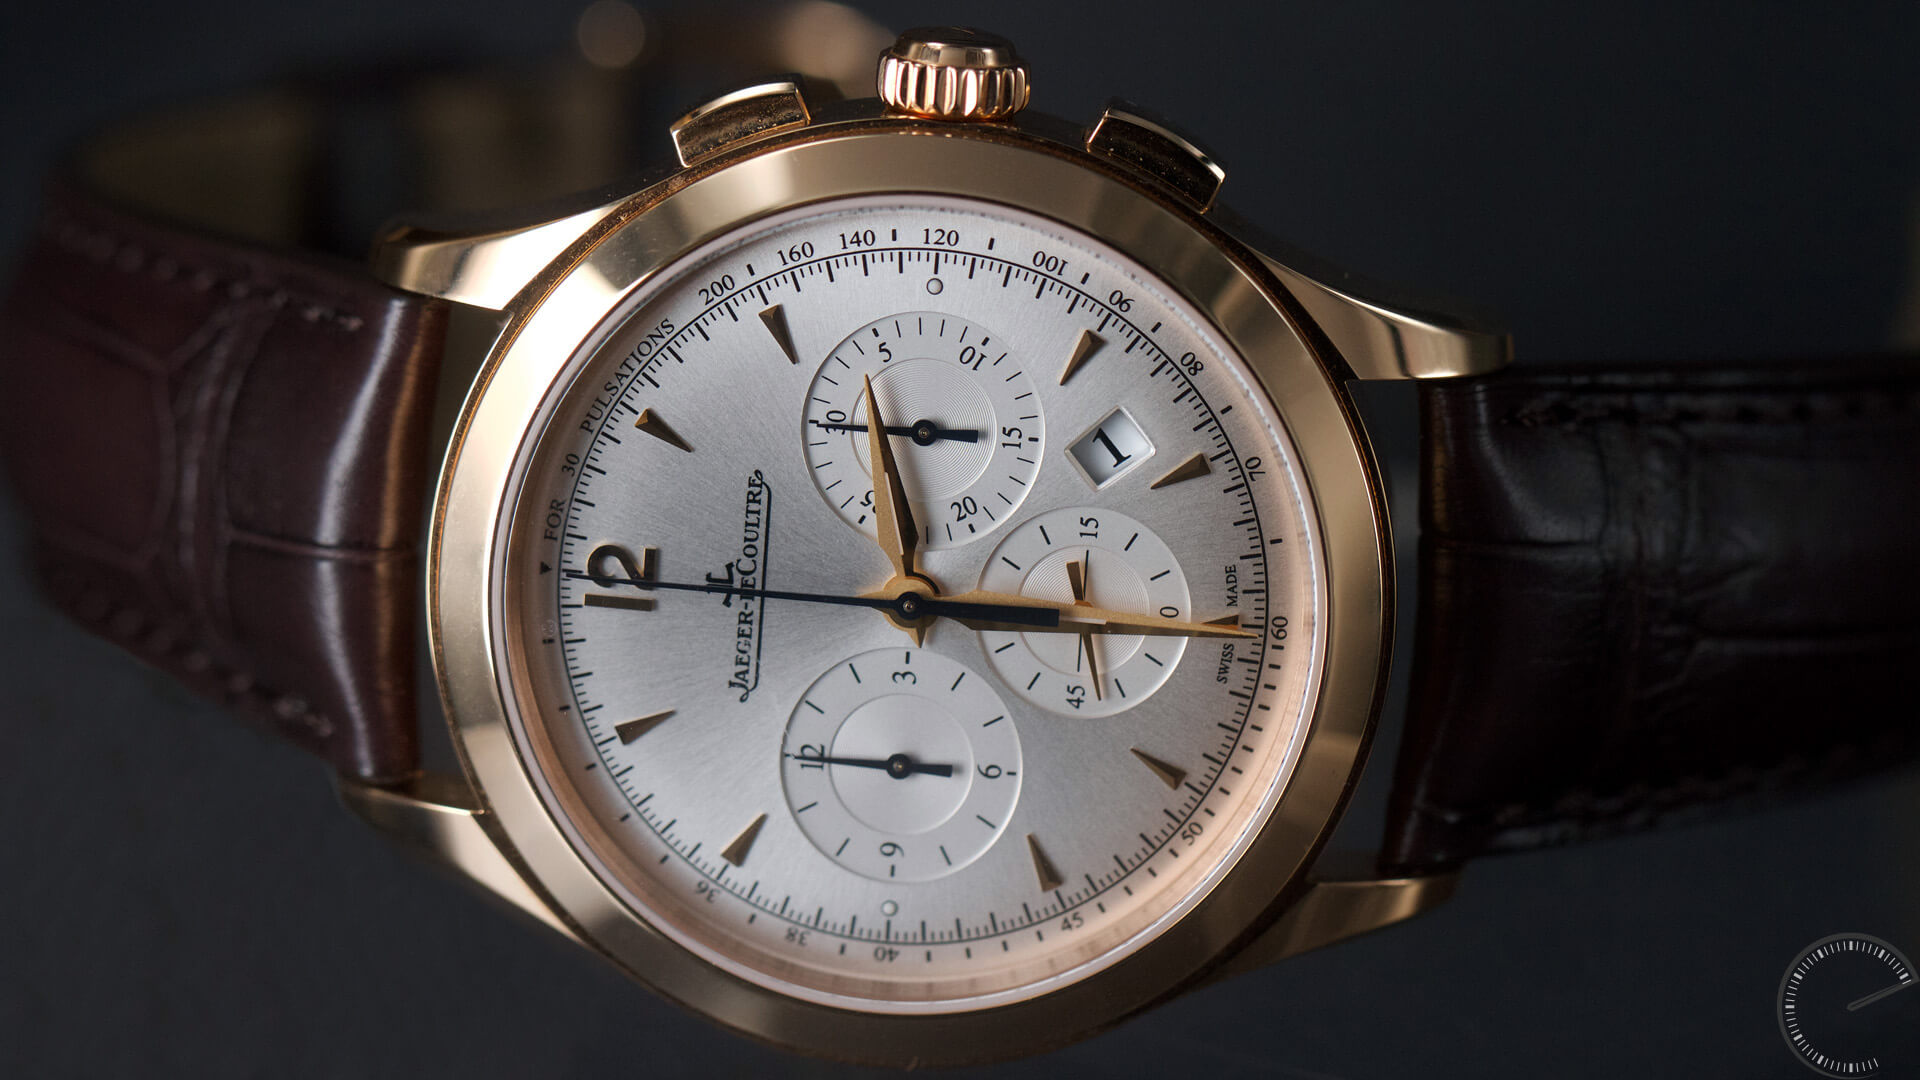 Jaeger lecoultre master control master chronograph in 18 carat pink gold escapement magazine for Chronograph master